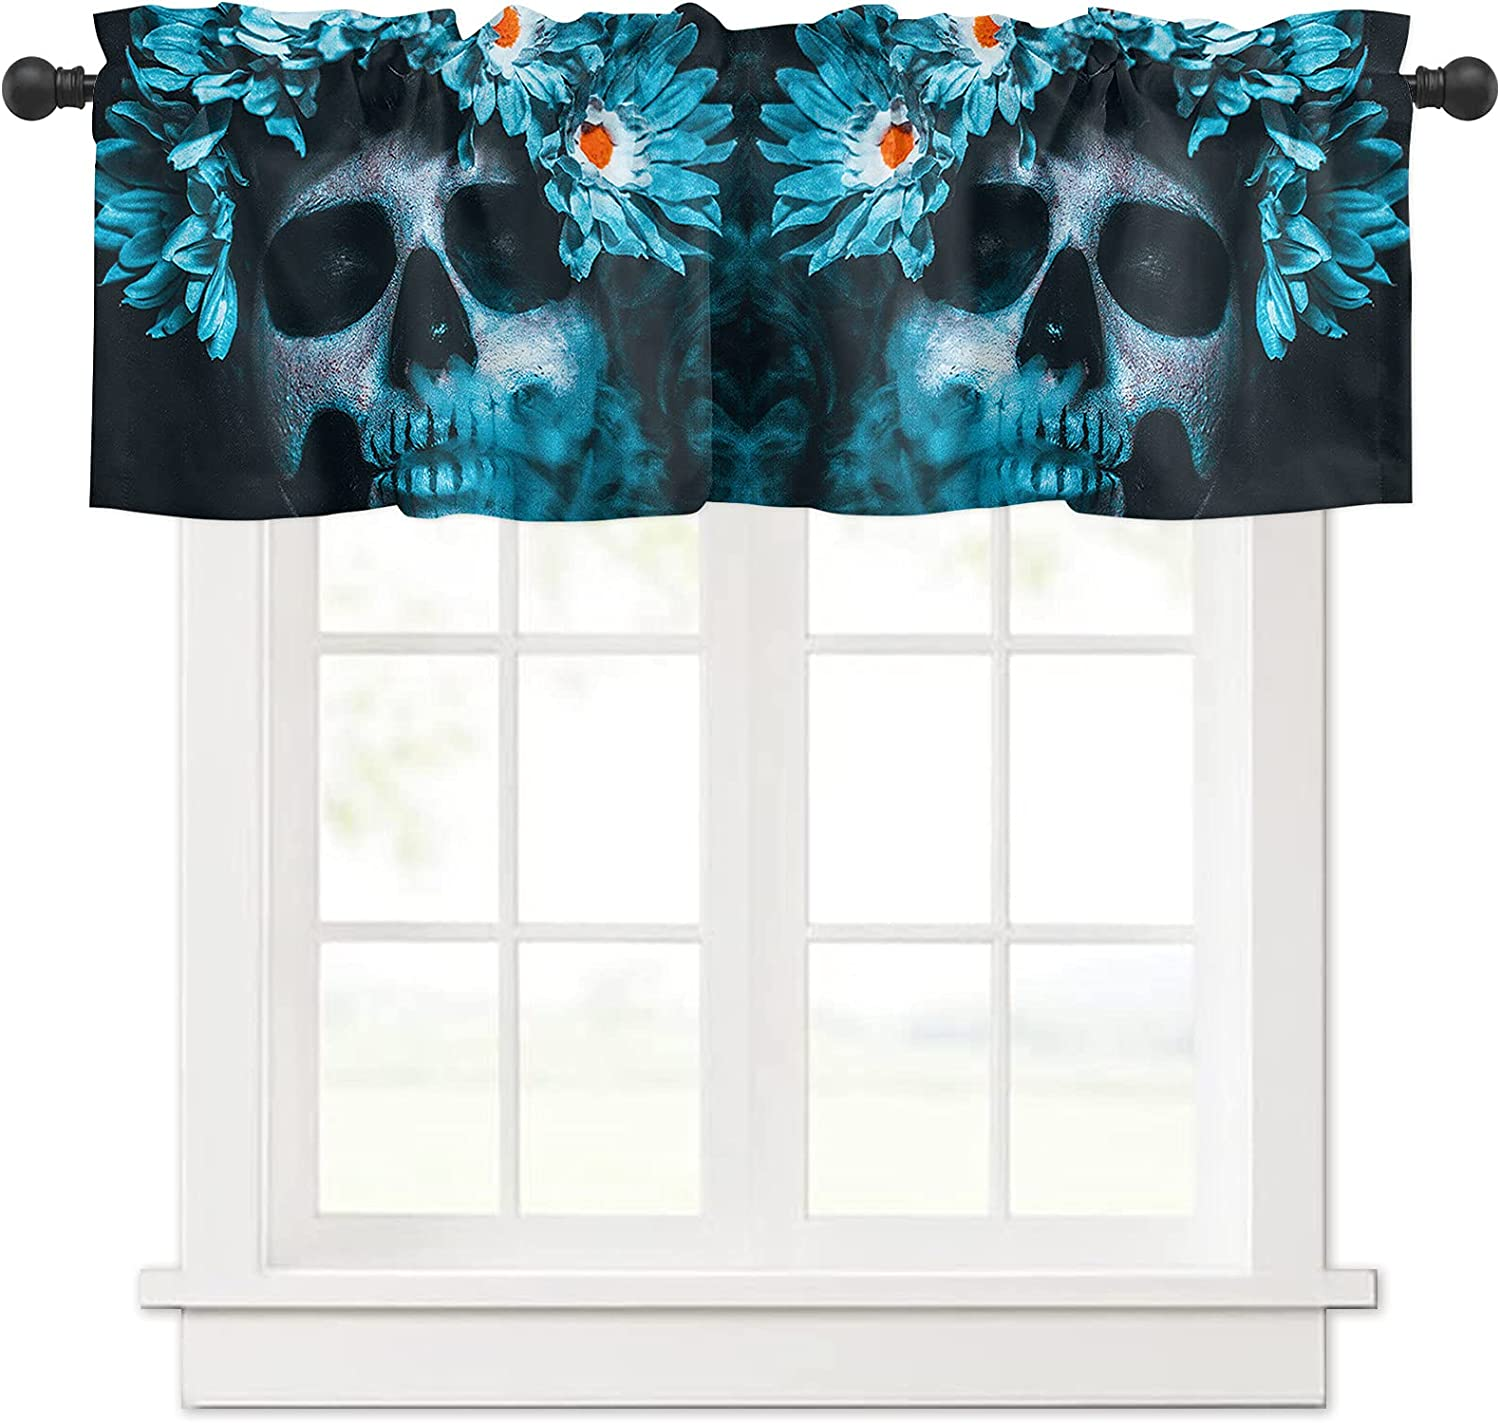 Ranking integrated 1st place Mexican Festival Blue Daisy and for Skull Curtain Valances Windo Max 47% OFF